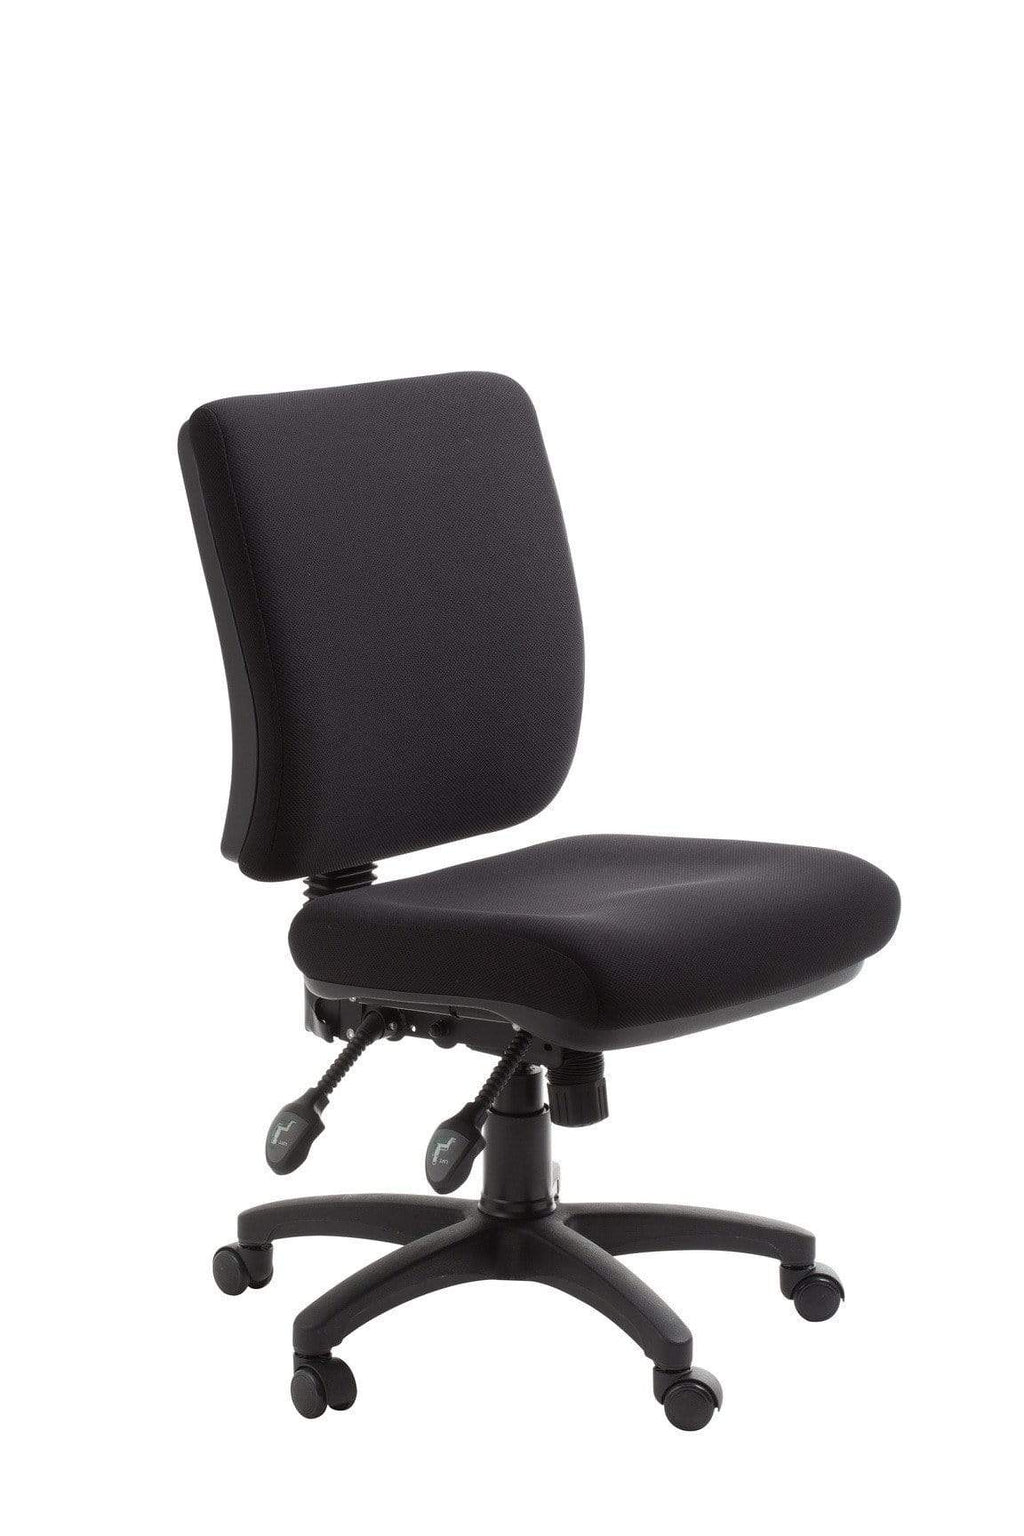 """Hobart"" Ergonomic Chair"